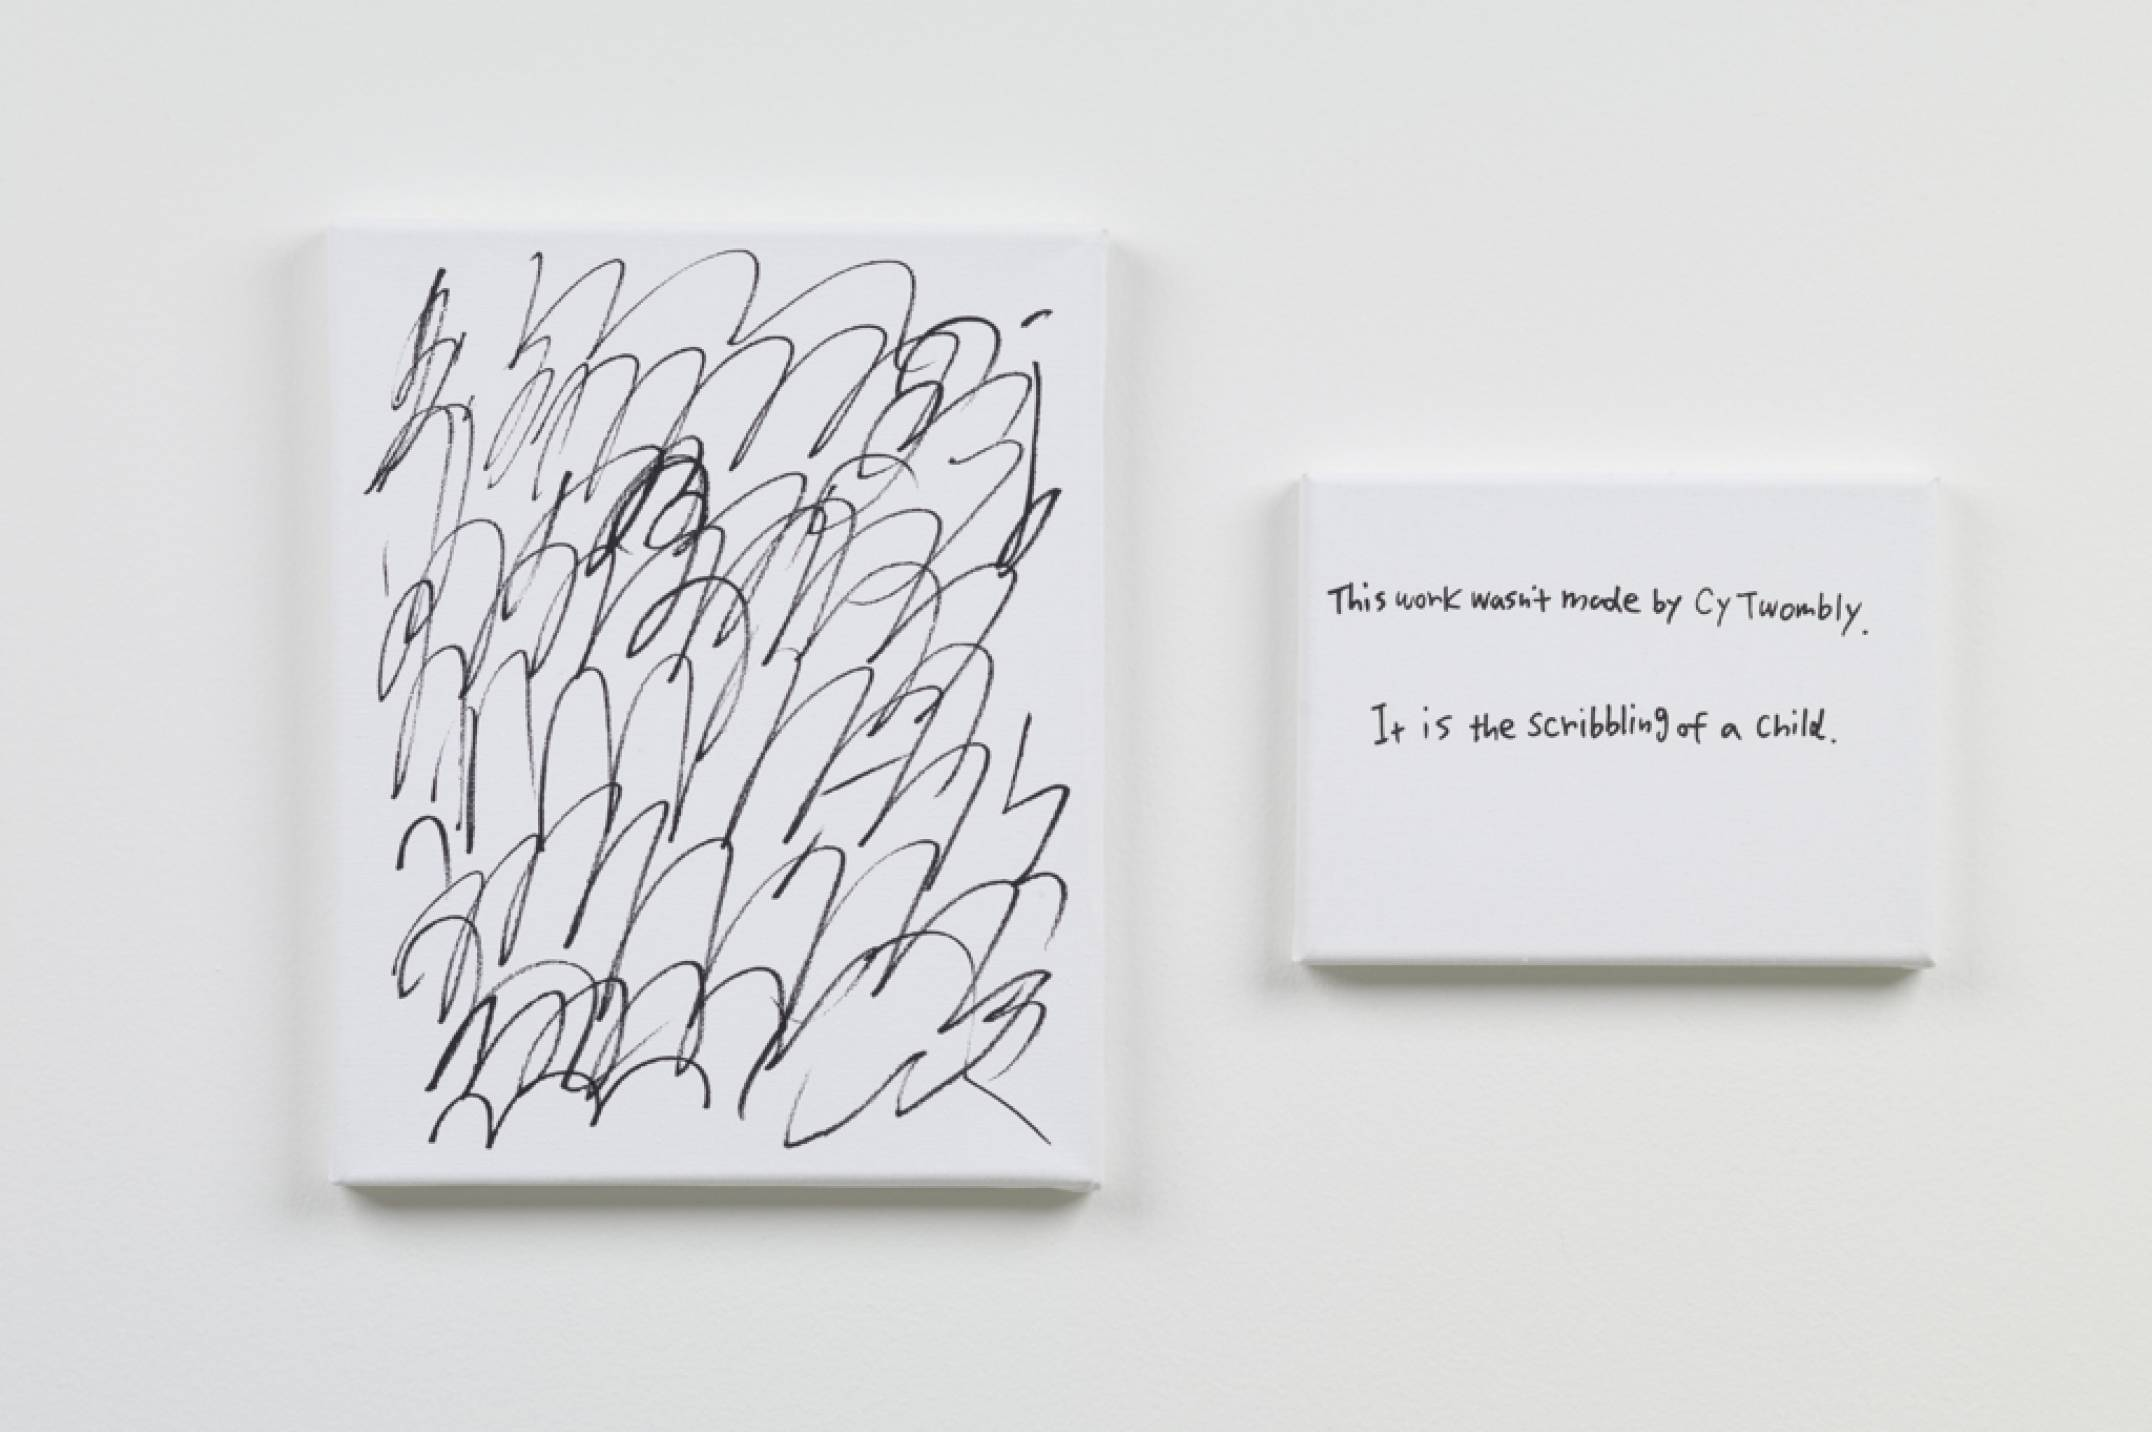 Ken Kagami, <em>This work wasn't made by Cy Twonbly,</em> 2017, marker on canvas, 27 × 22 cm /&nbsp;14 × 18 cm - Mendes Wood DM